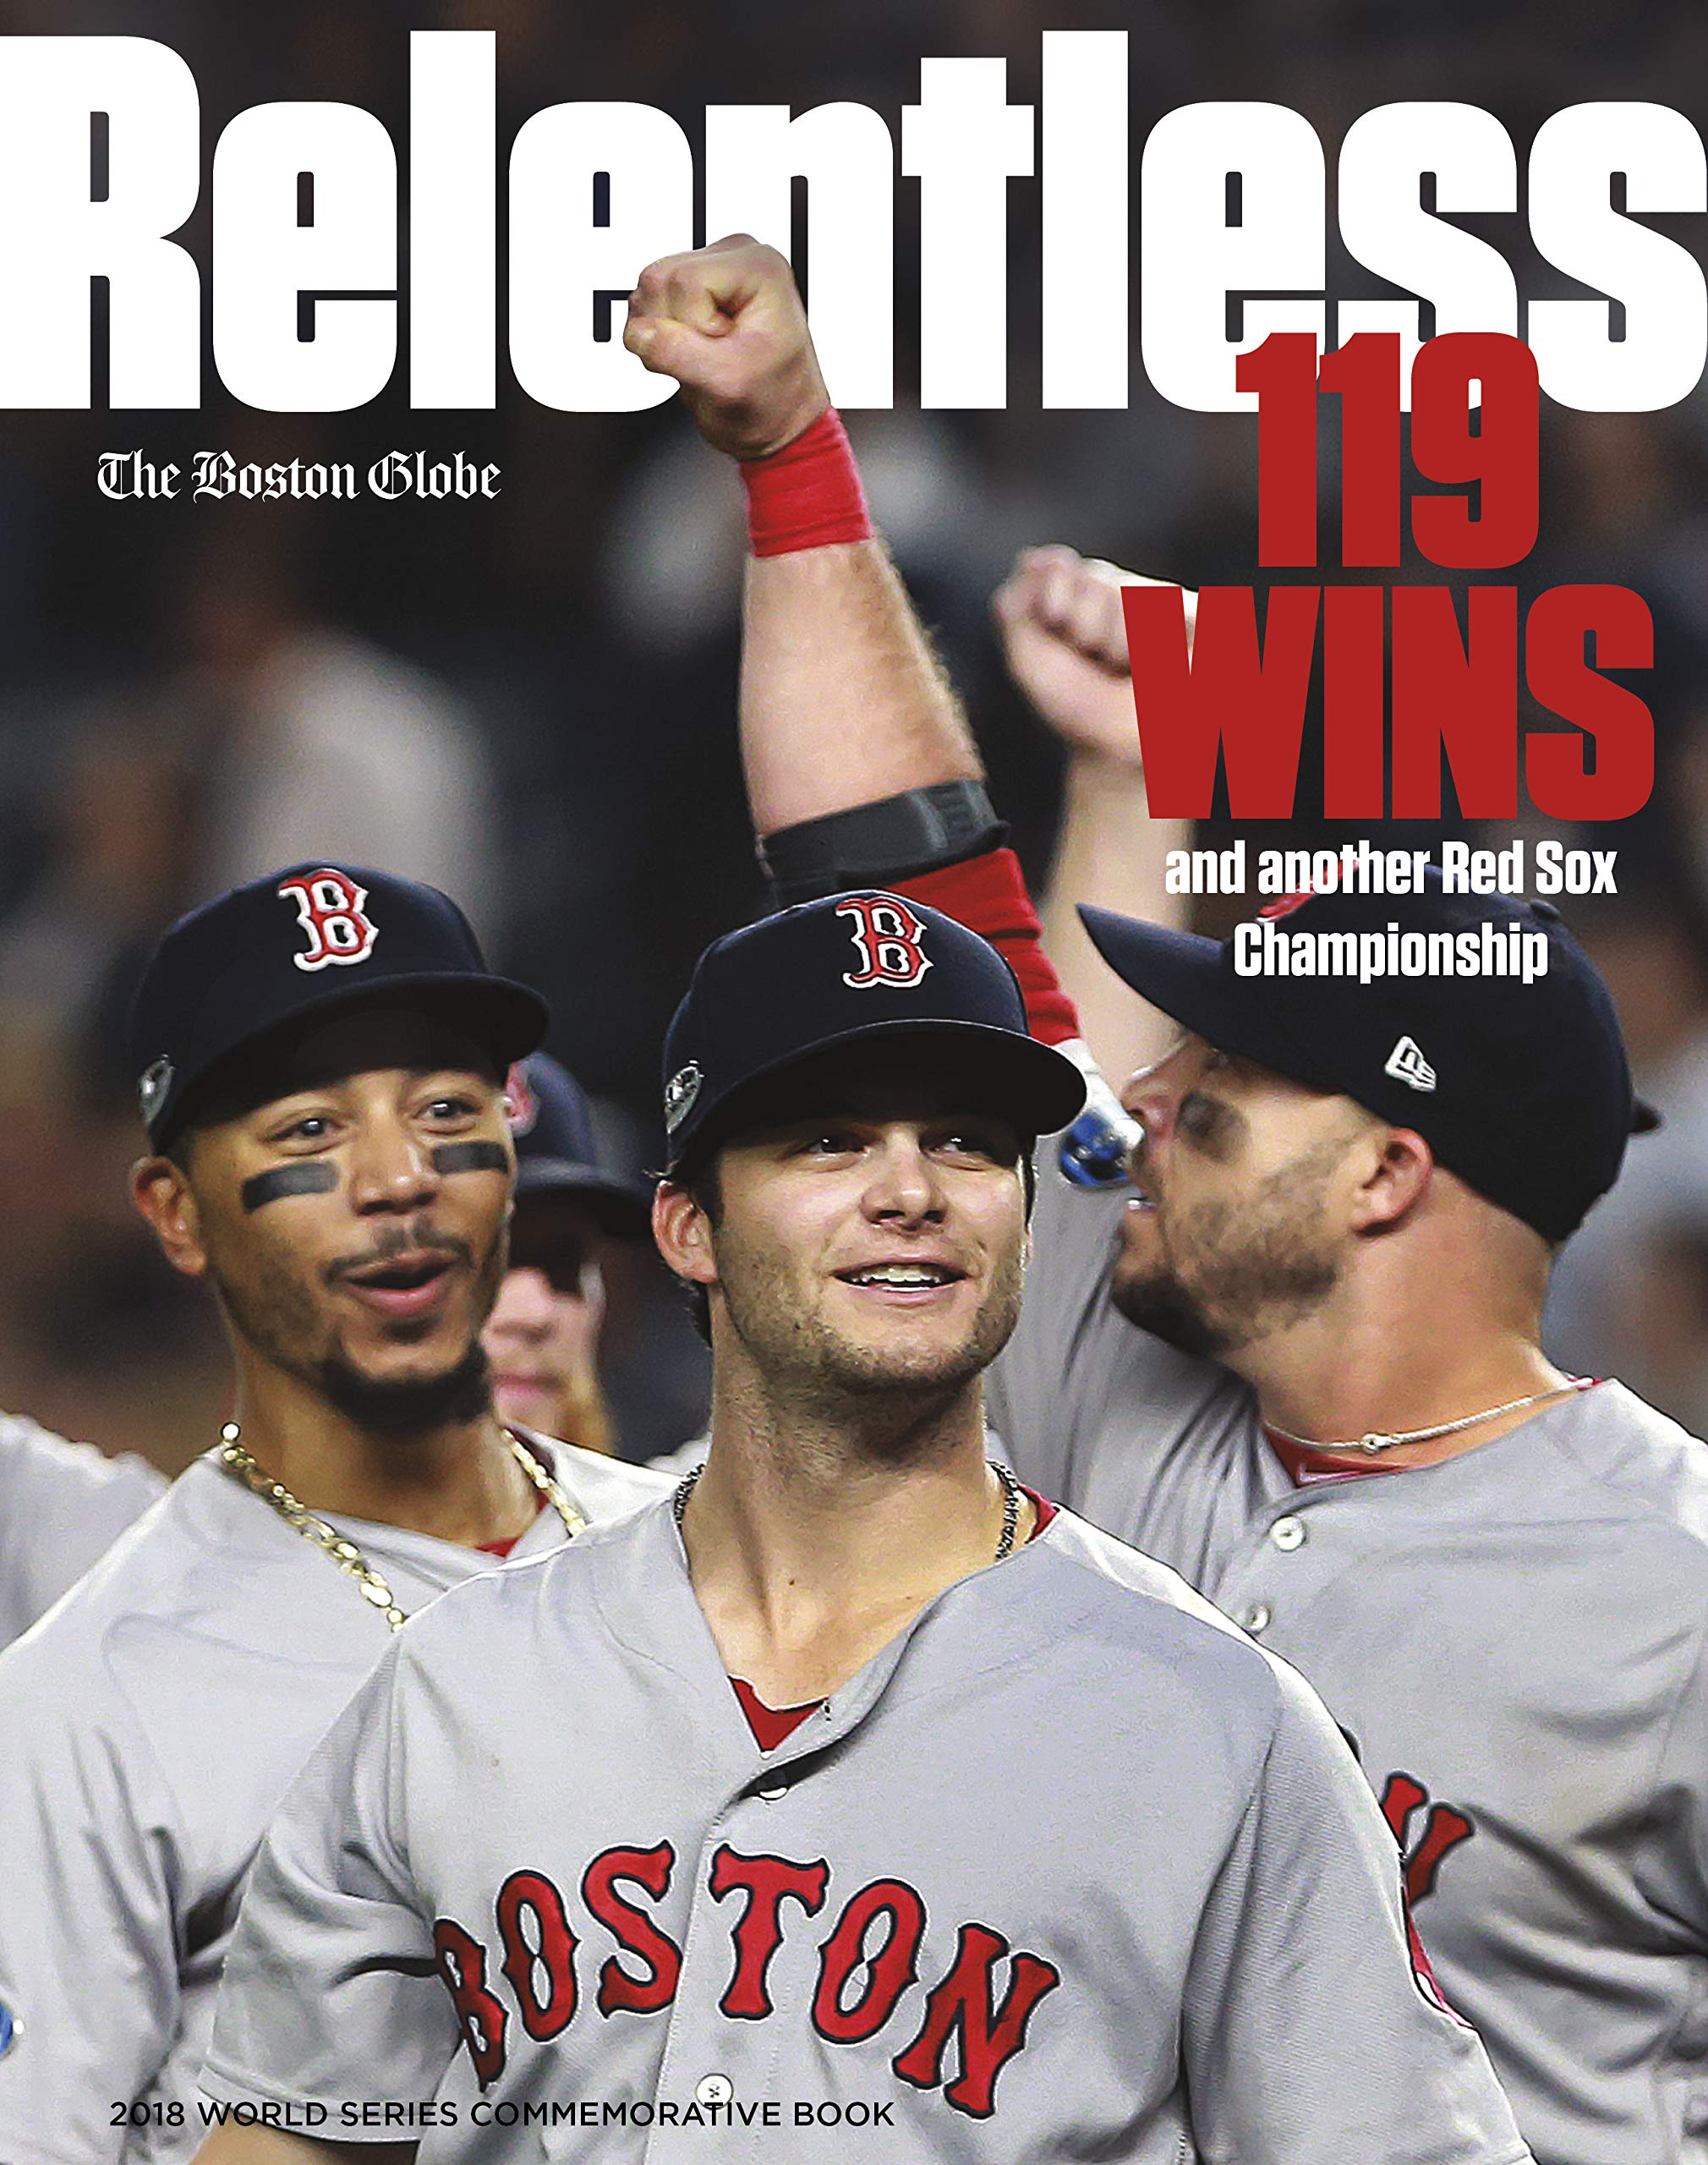 39f53291a Relentless - 119 Wins and Another Red Sox Championship Hardcover – October  30, 2018